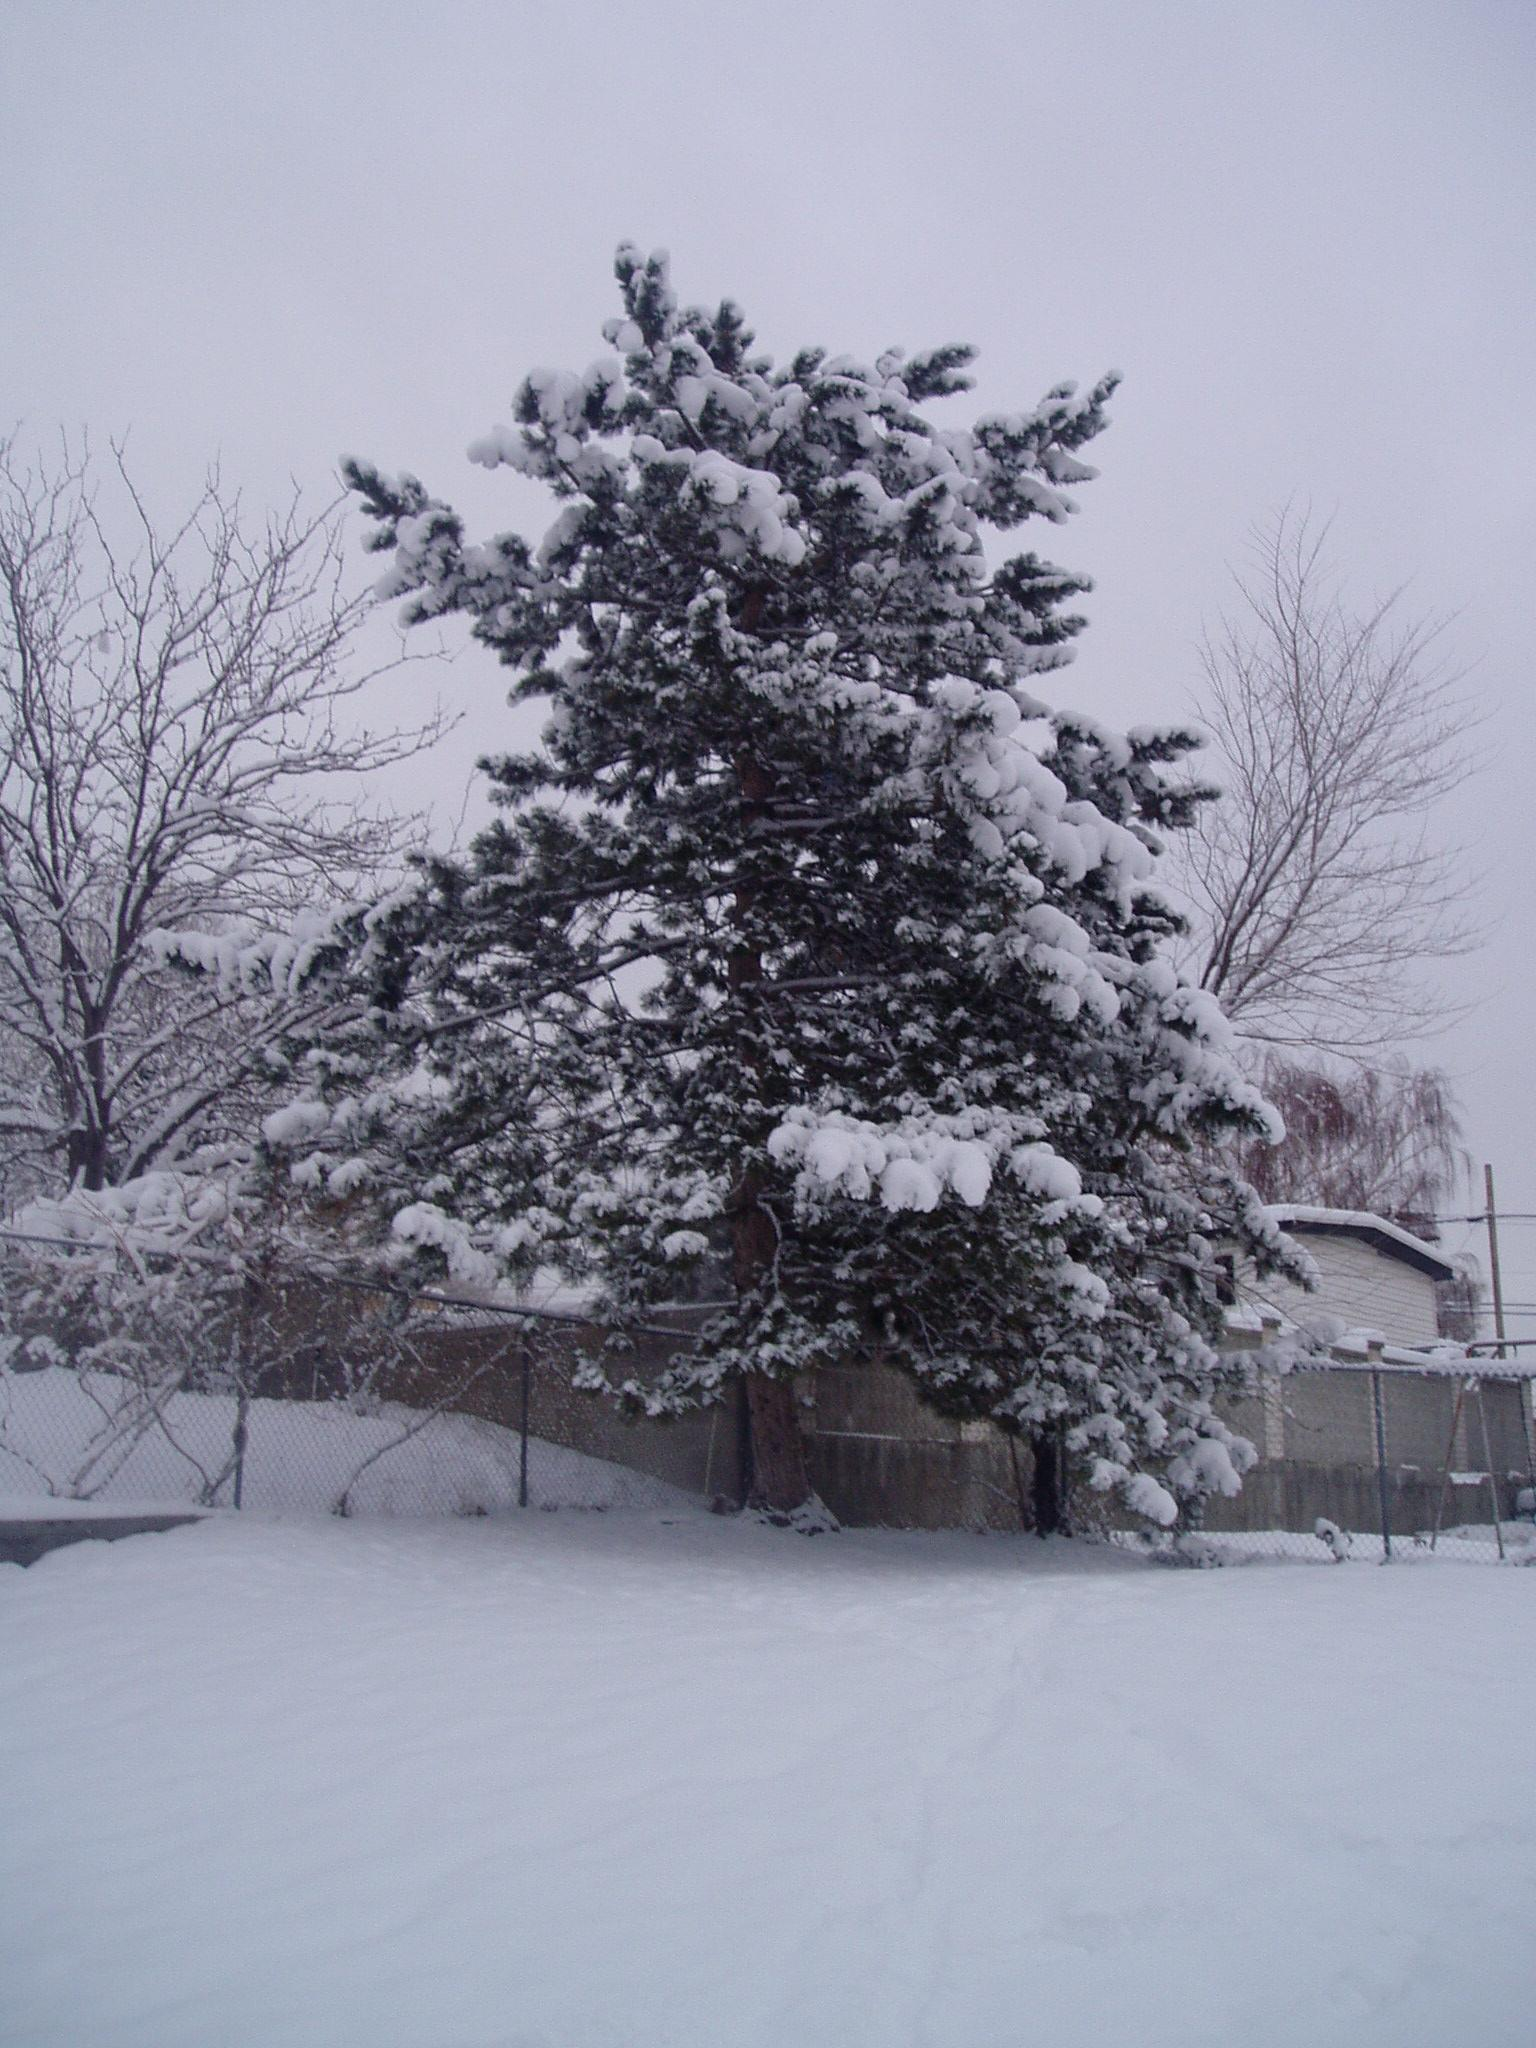 The pine tree in our backyard is totally covered. It looks so Christmas.